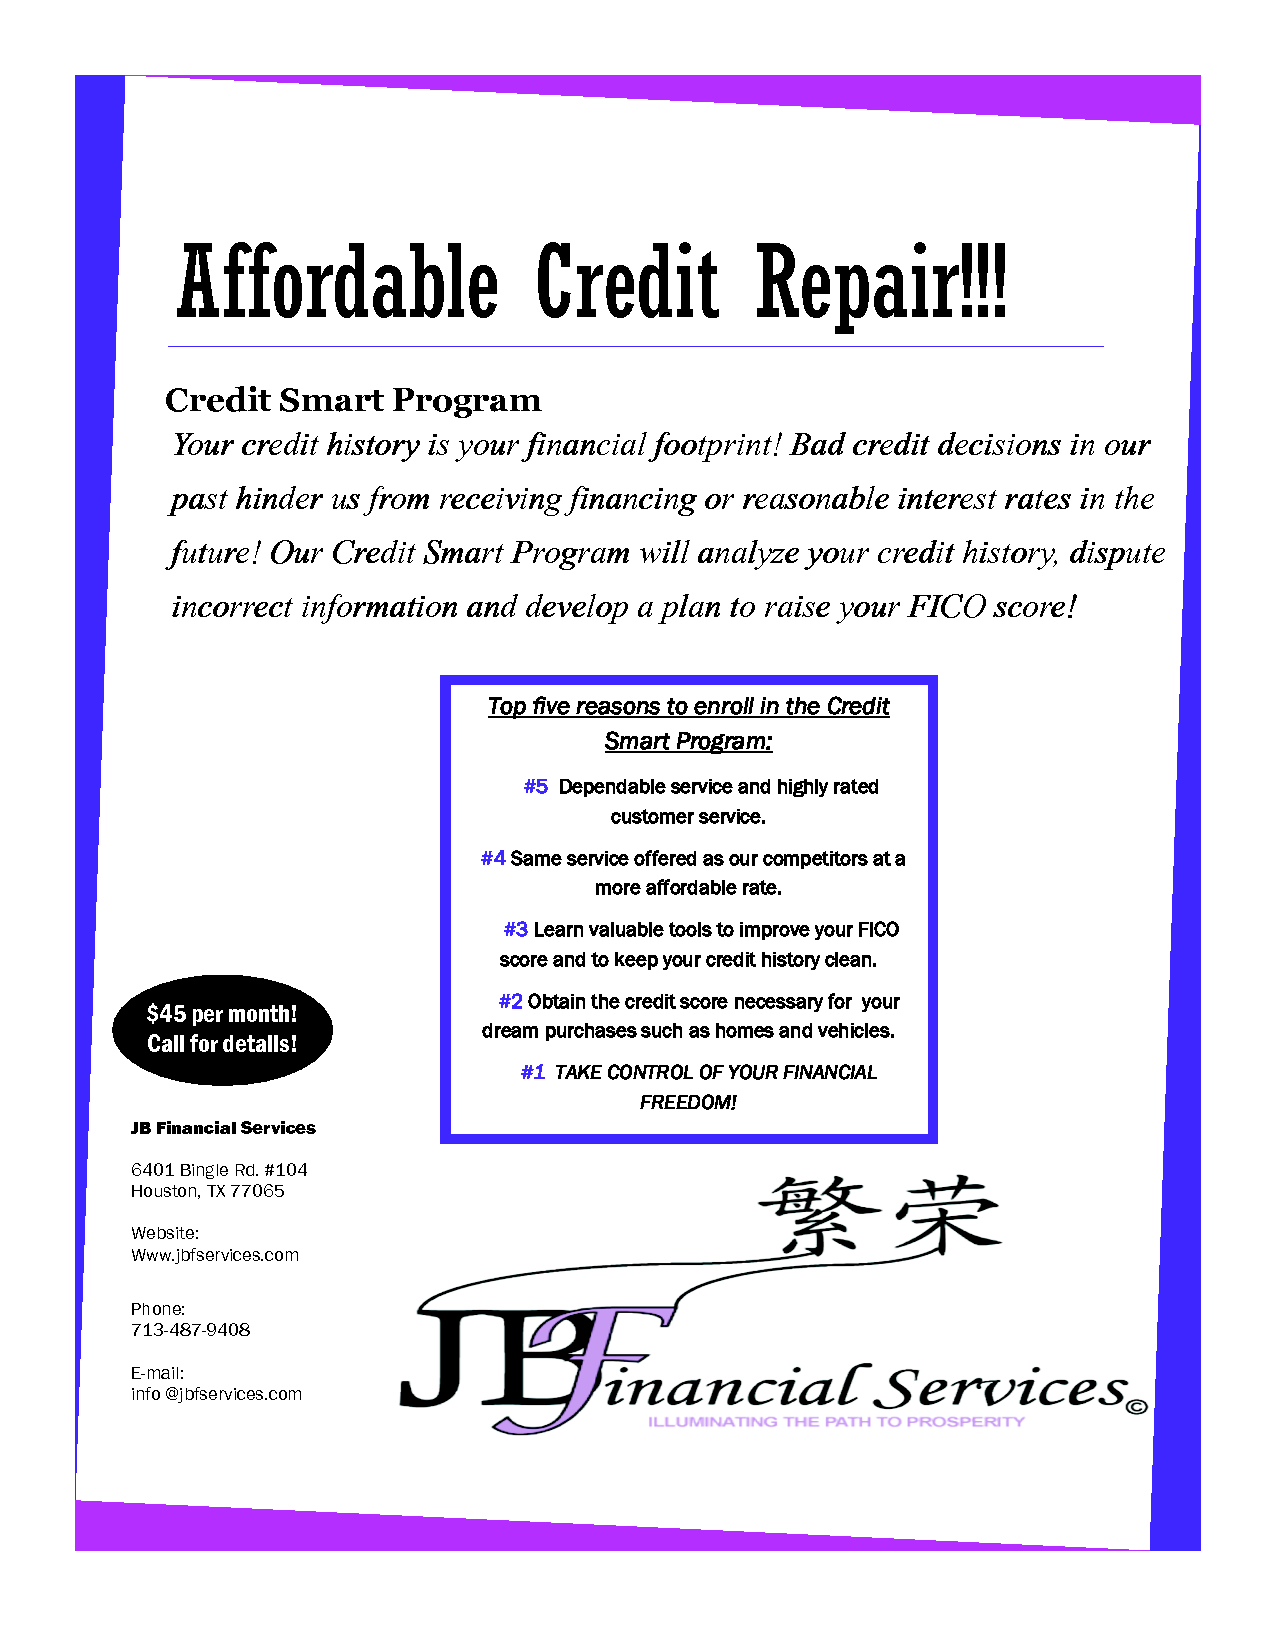 Payday loans for bad credit no upfront fees image 7